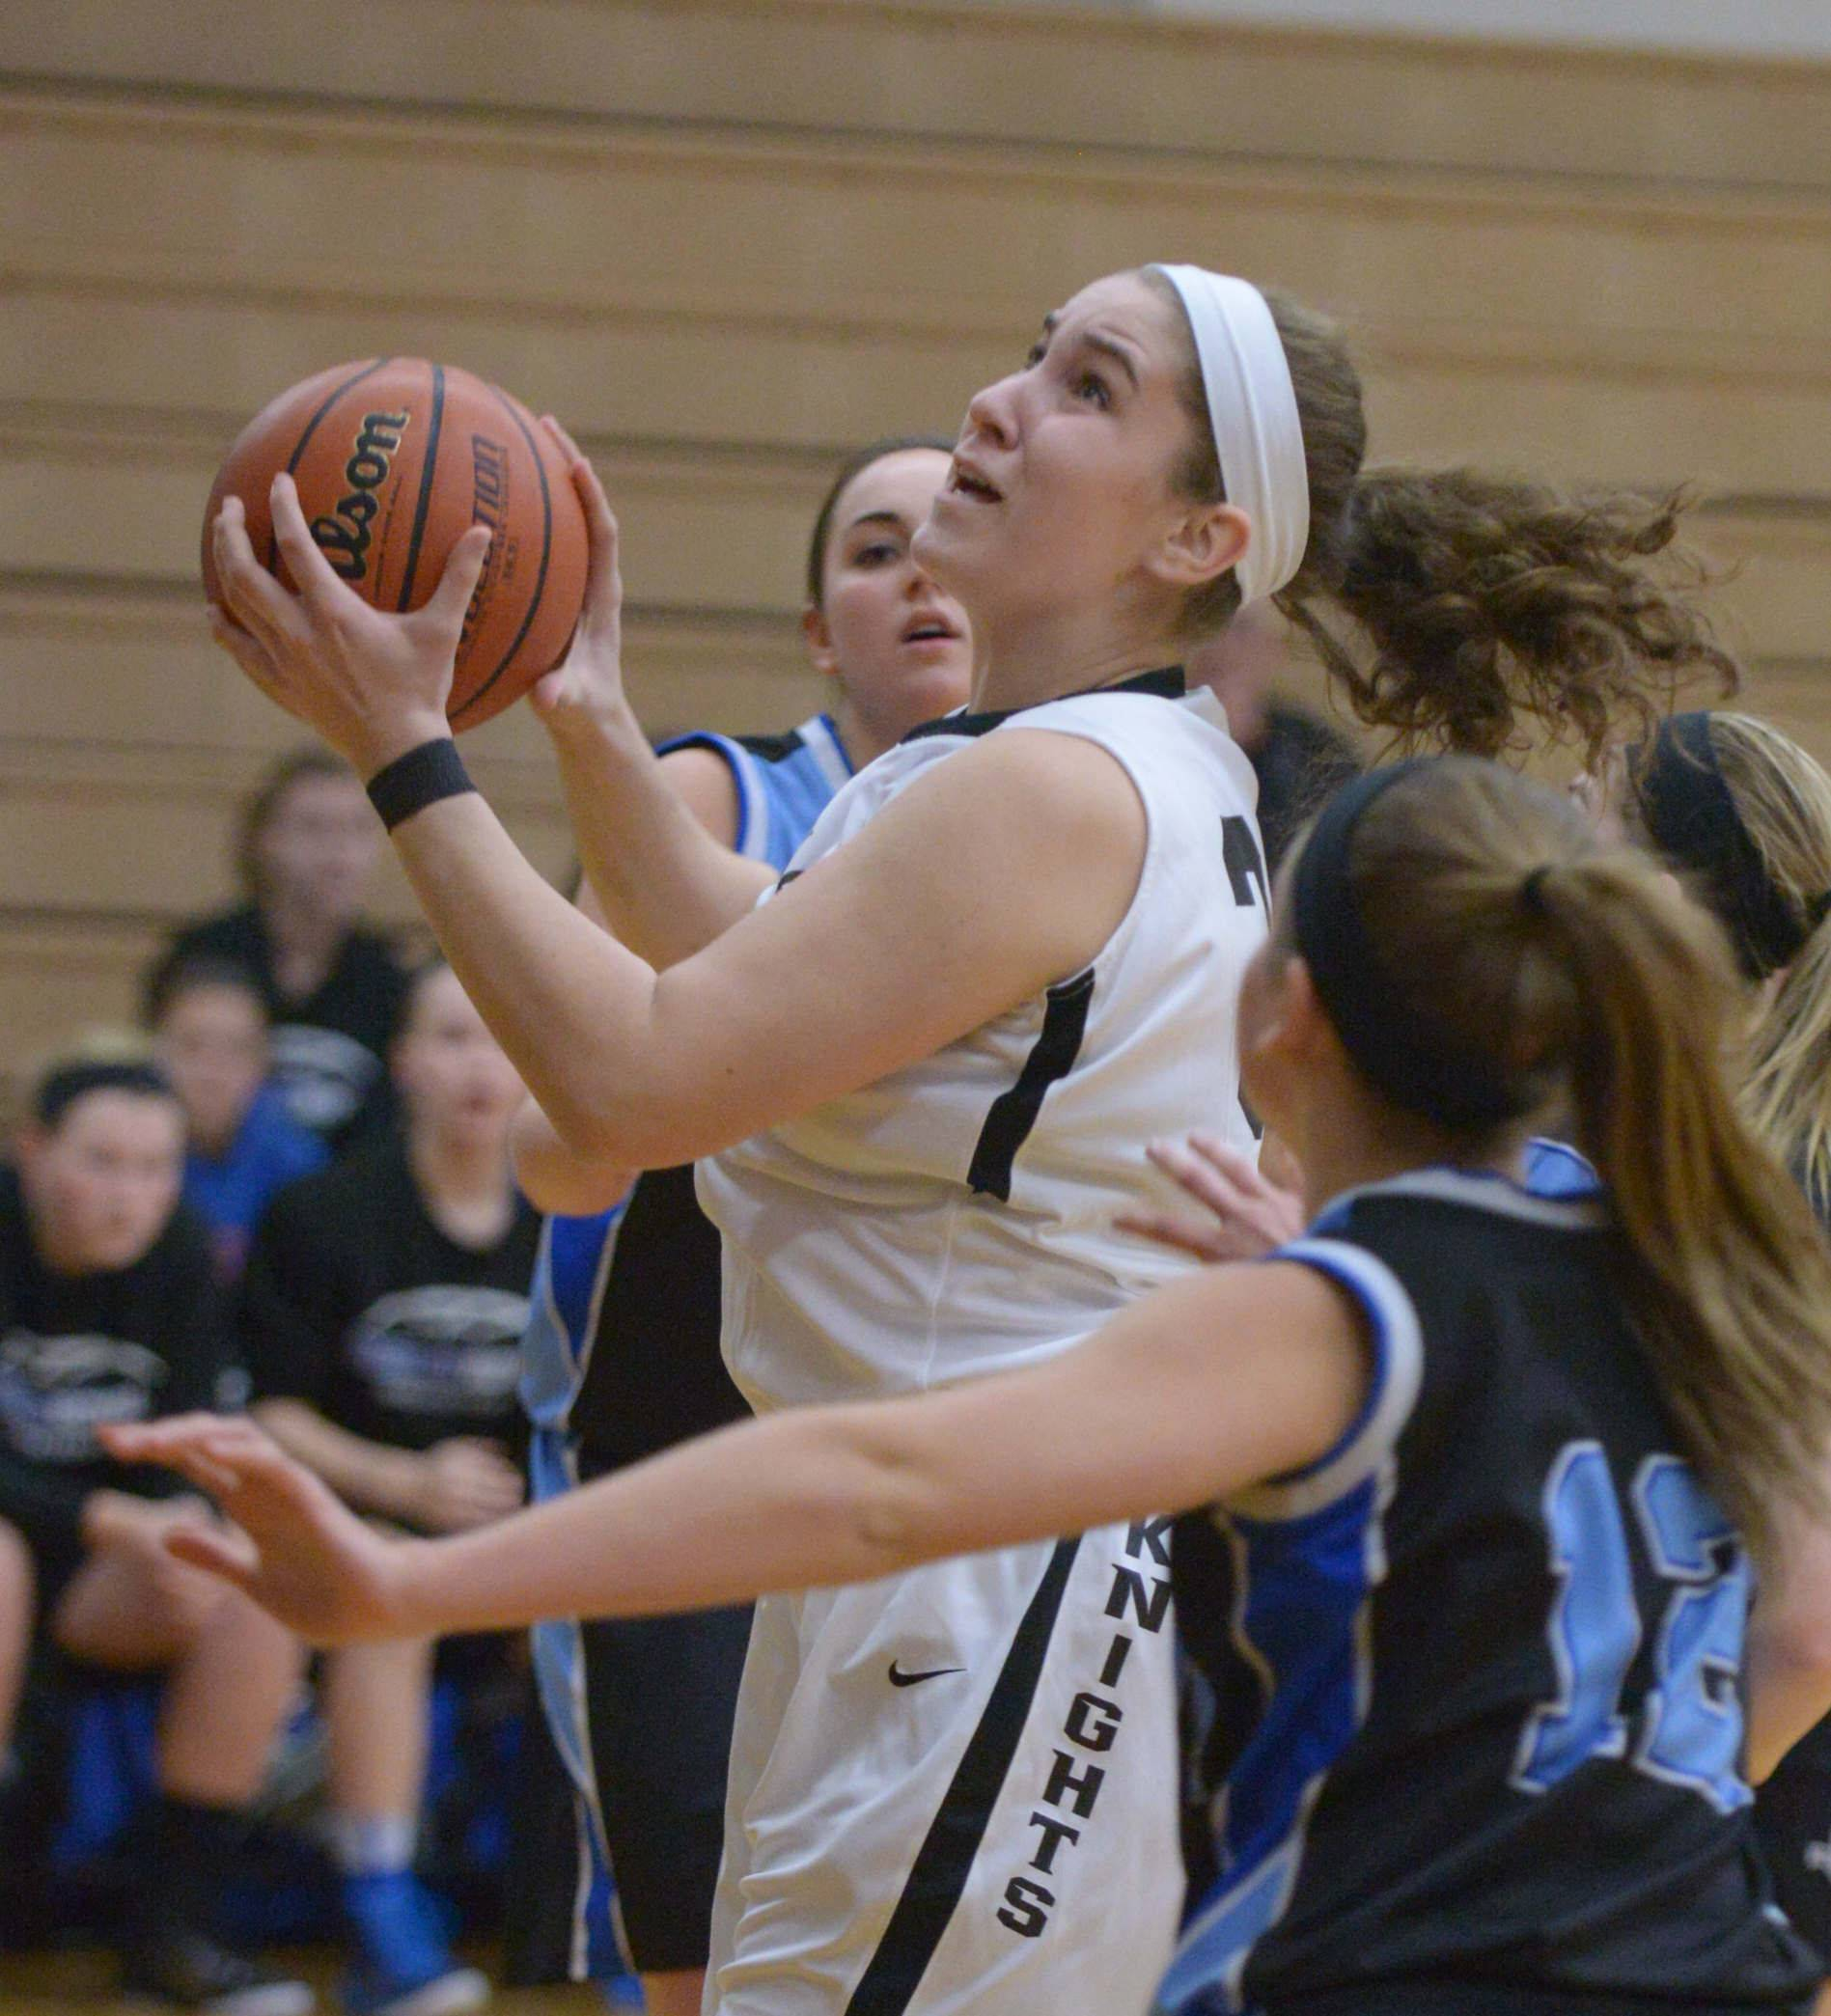 Images from the Kaneland vs. Rosary girls basketball game on Tuesday, Jan. 6 in Maple Park.